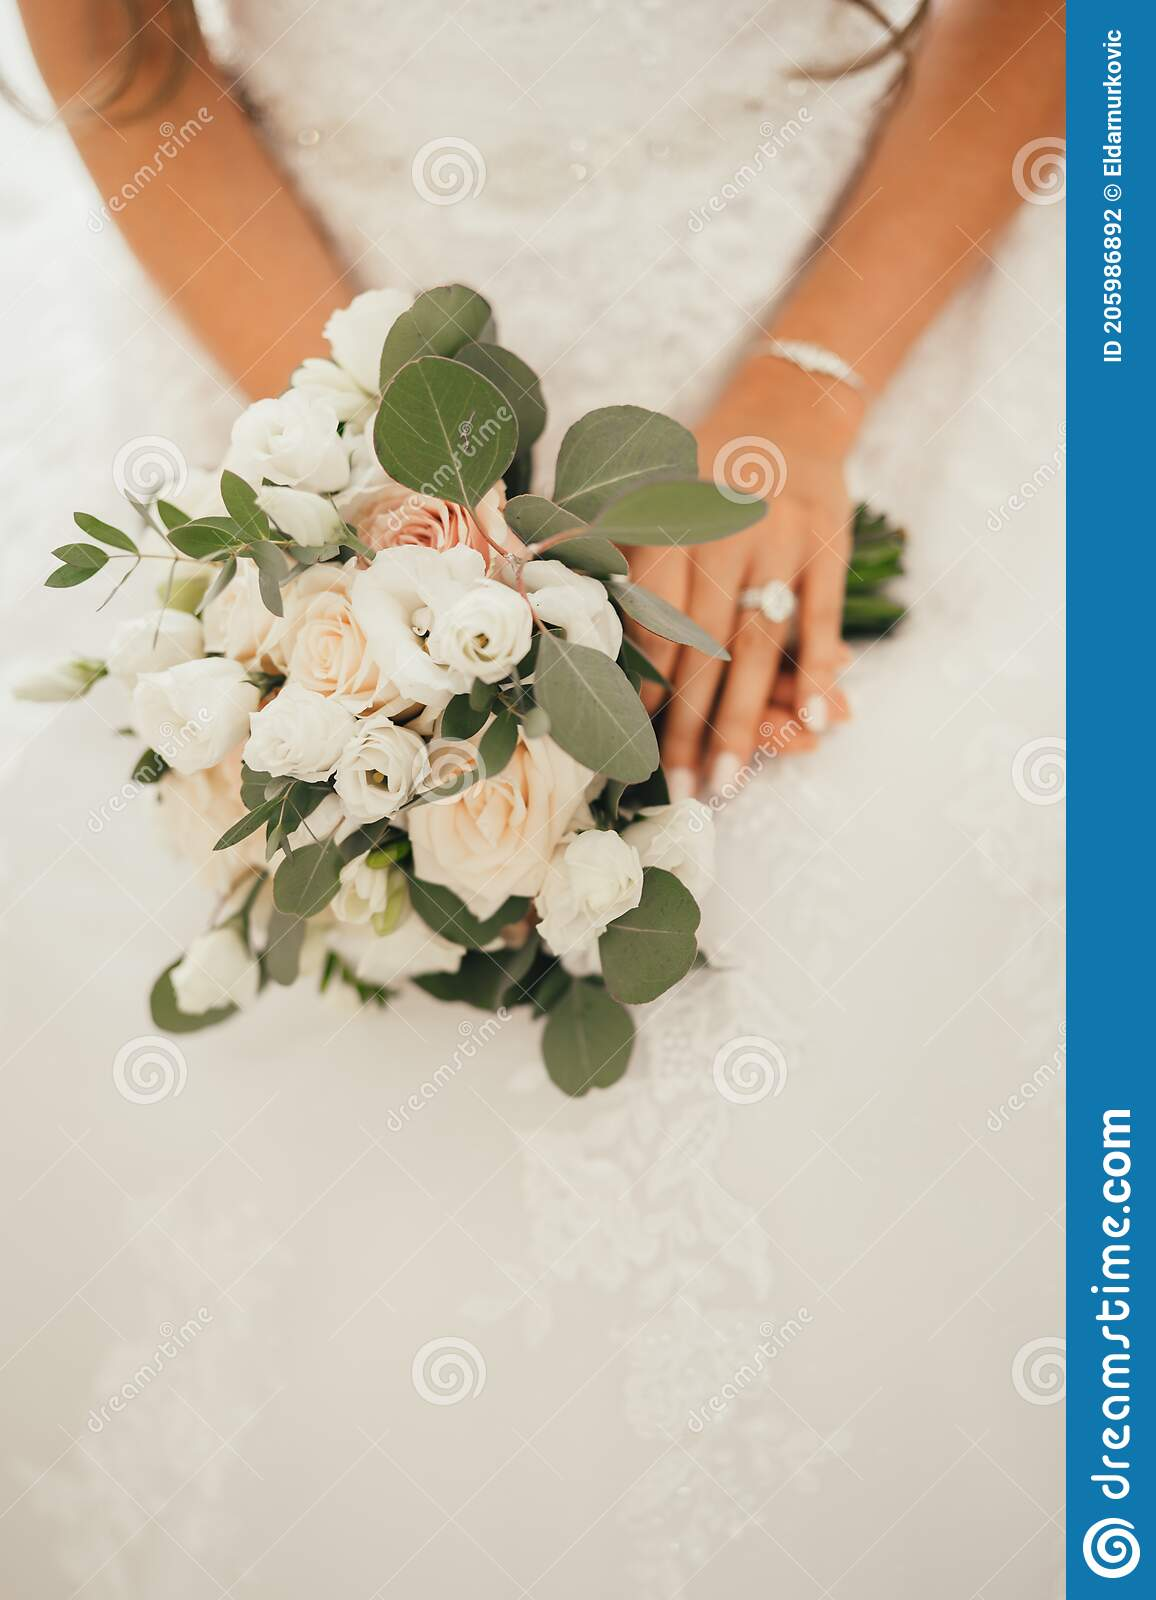 Traditional Light Pink And White Roses Arranged In A Bridal Bouquet Romantic Celebration Decoration Bride In Lace Wedding Dress Stock Photo Image Of Event Couple 205986892